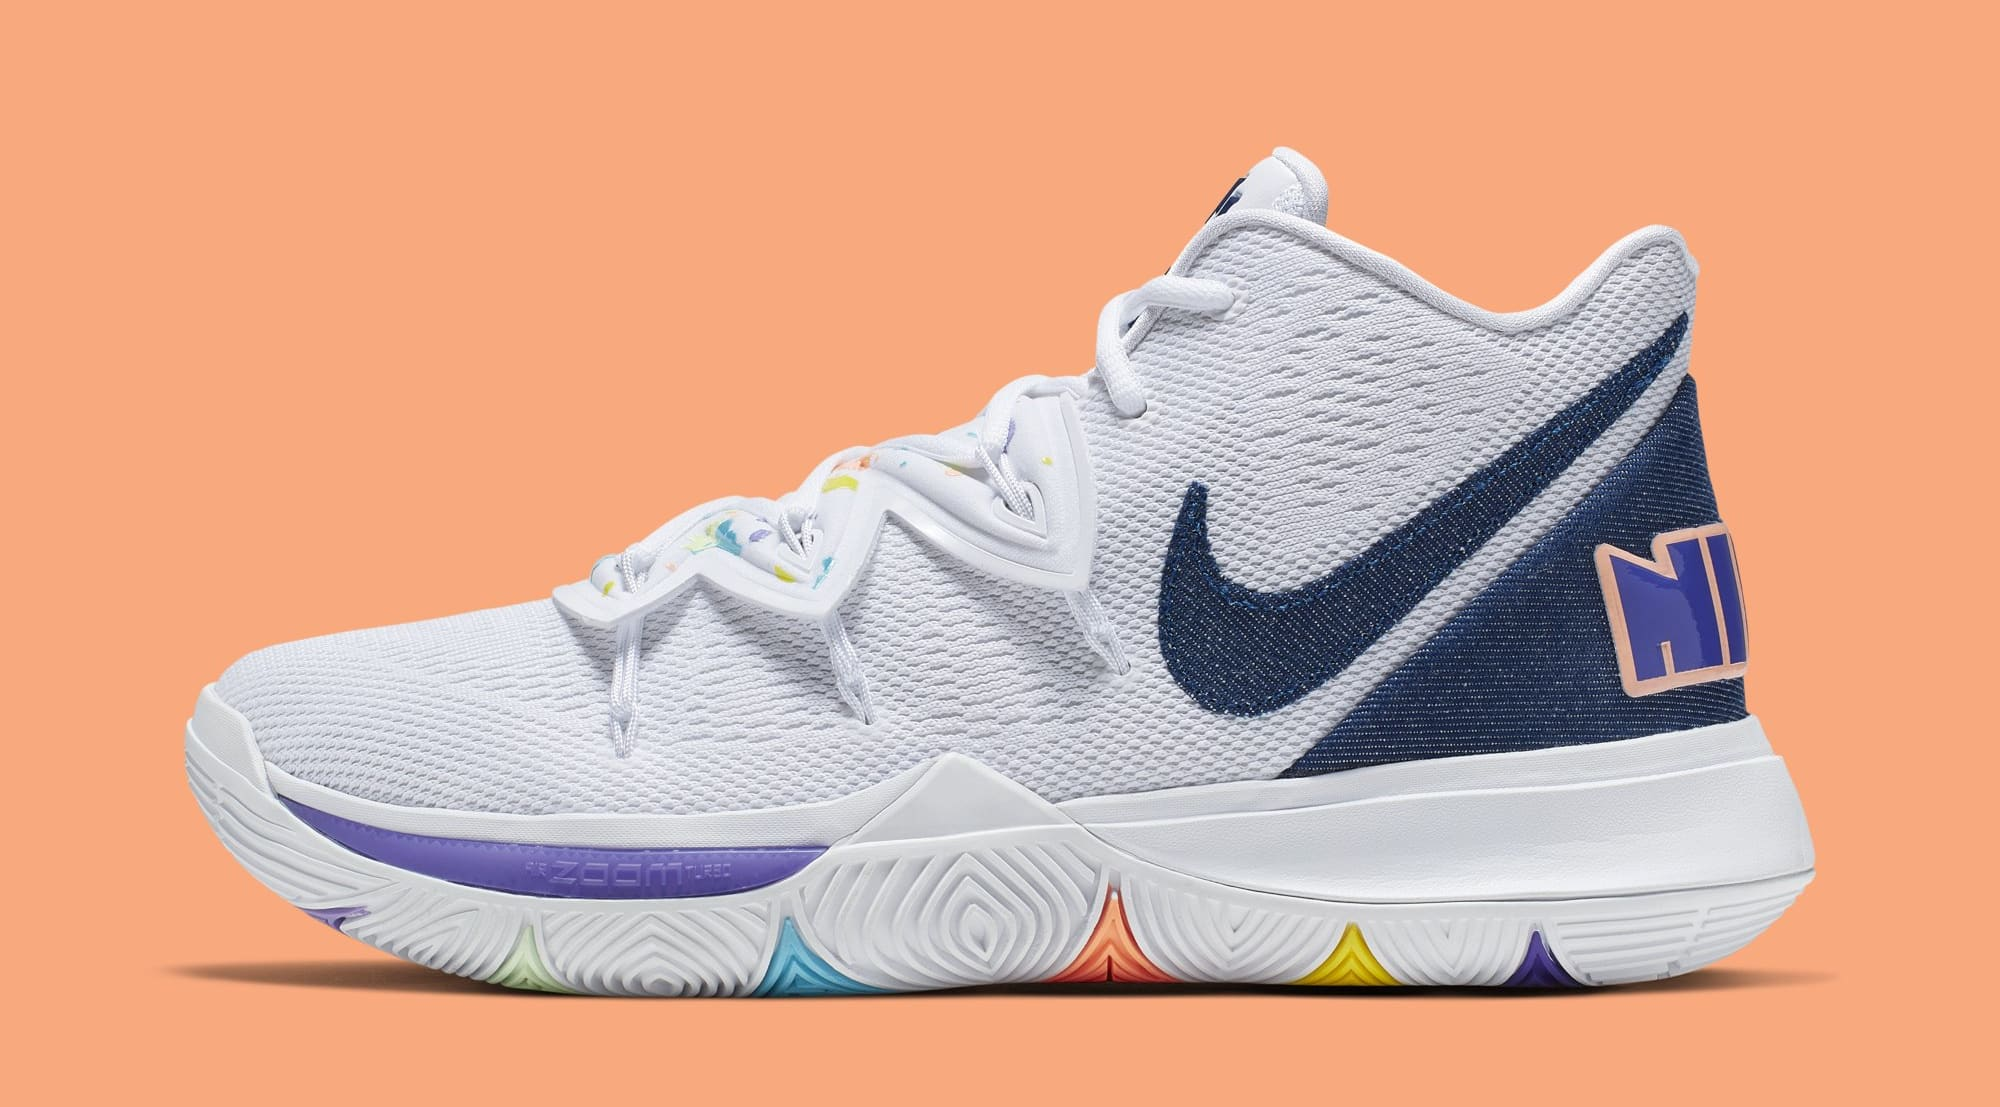 Nike Kyrie 5 'Have a Nike Day' AO2919-101 (Lateral)